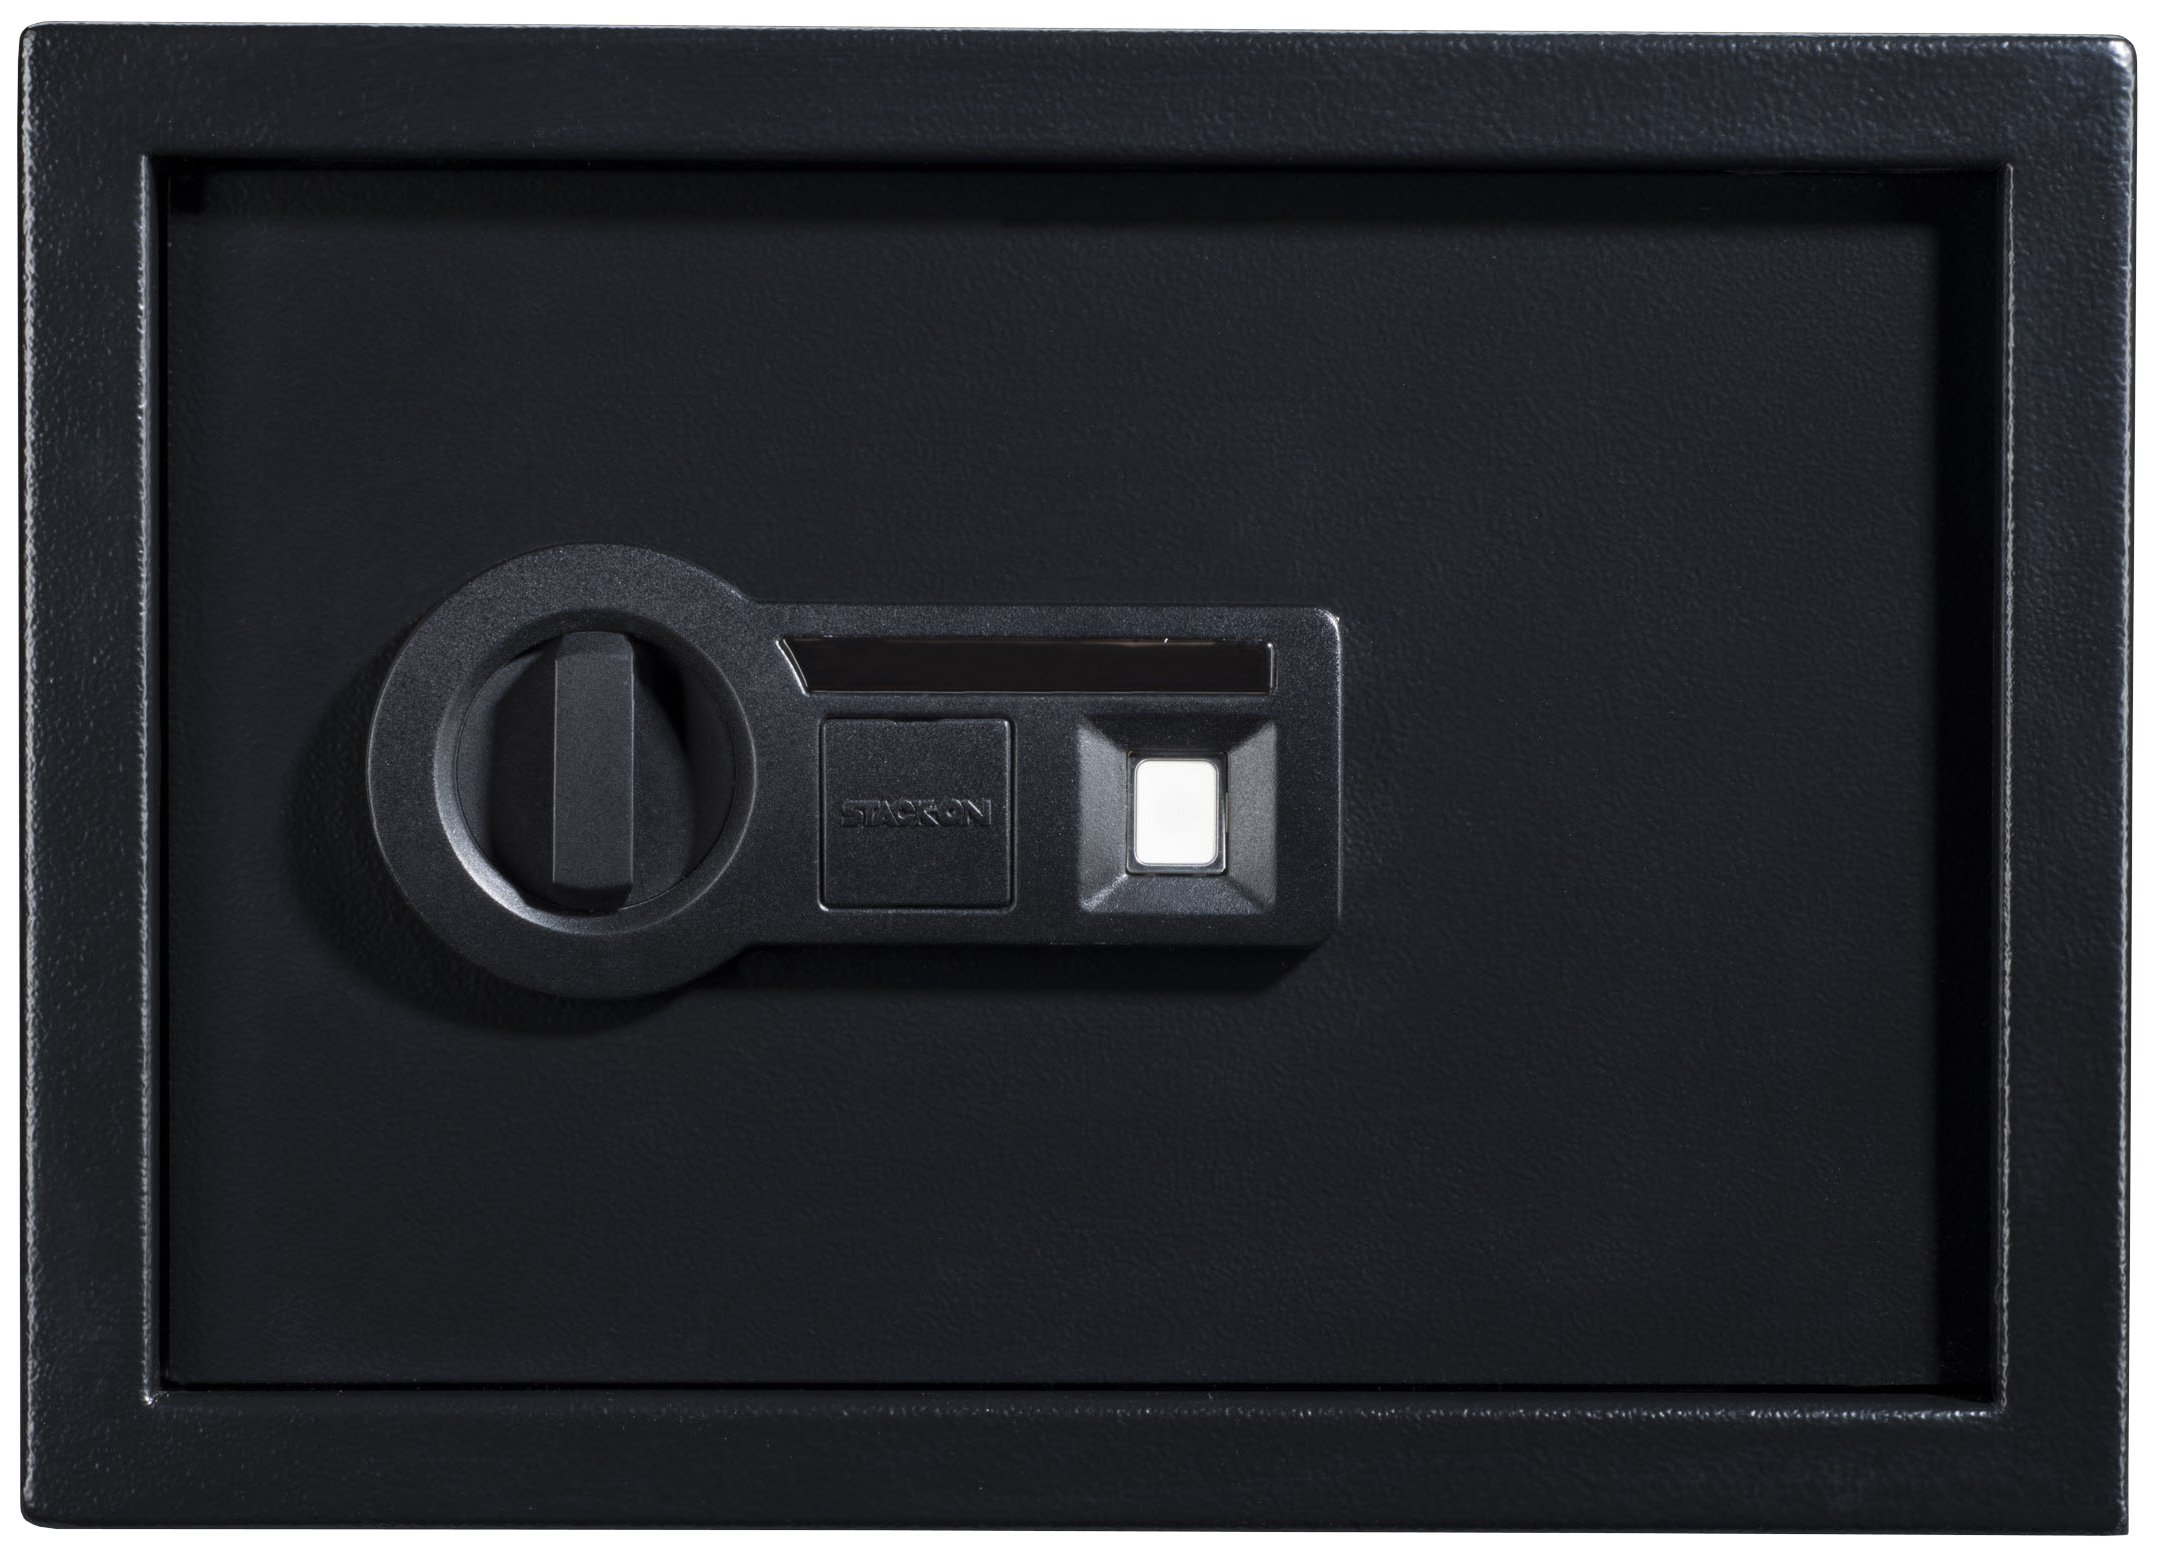 Stack-On PS-15-10-B Biometric Personal Safe with Adjustable Shelf, Black